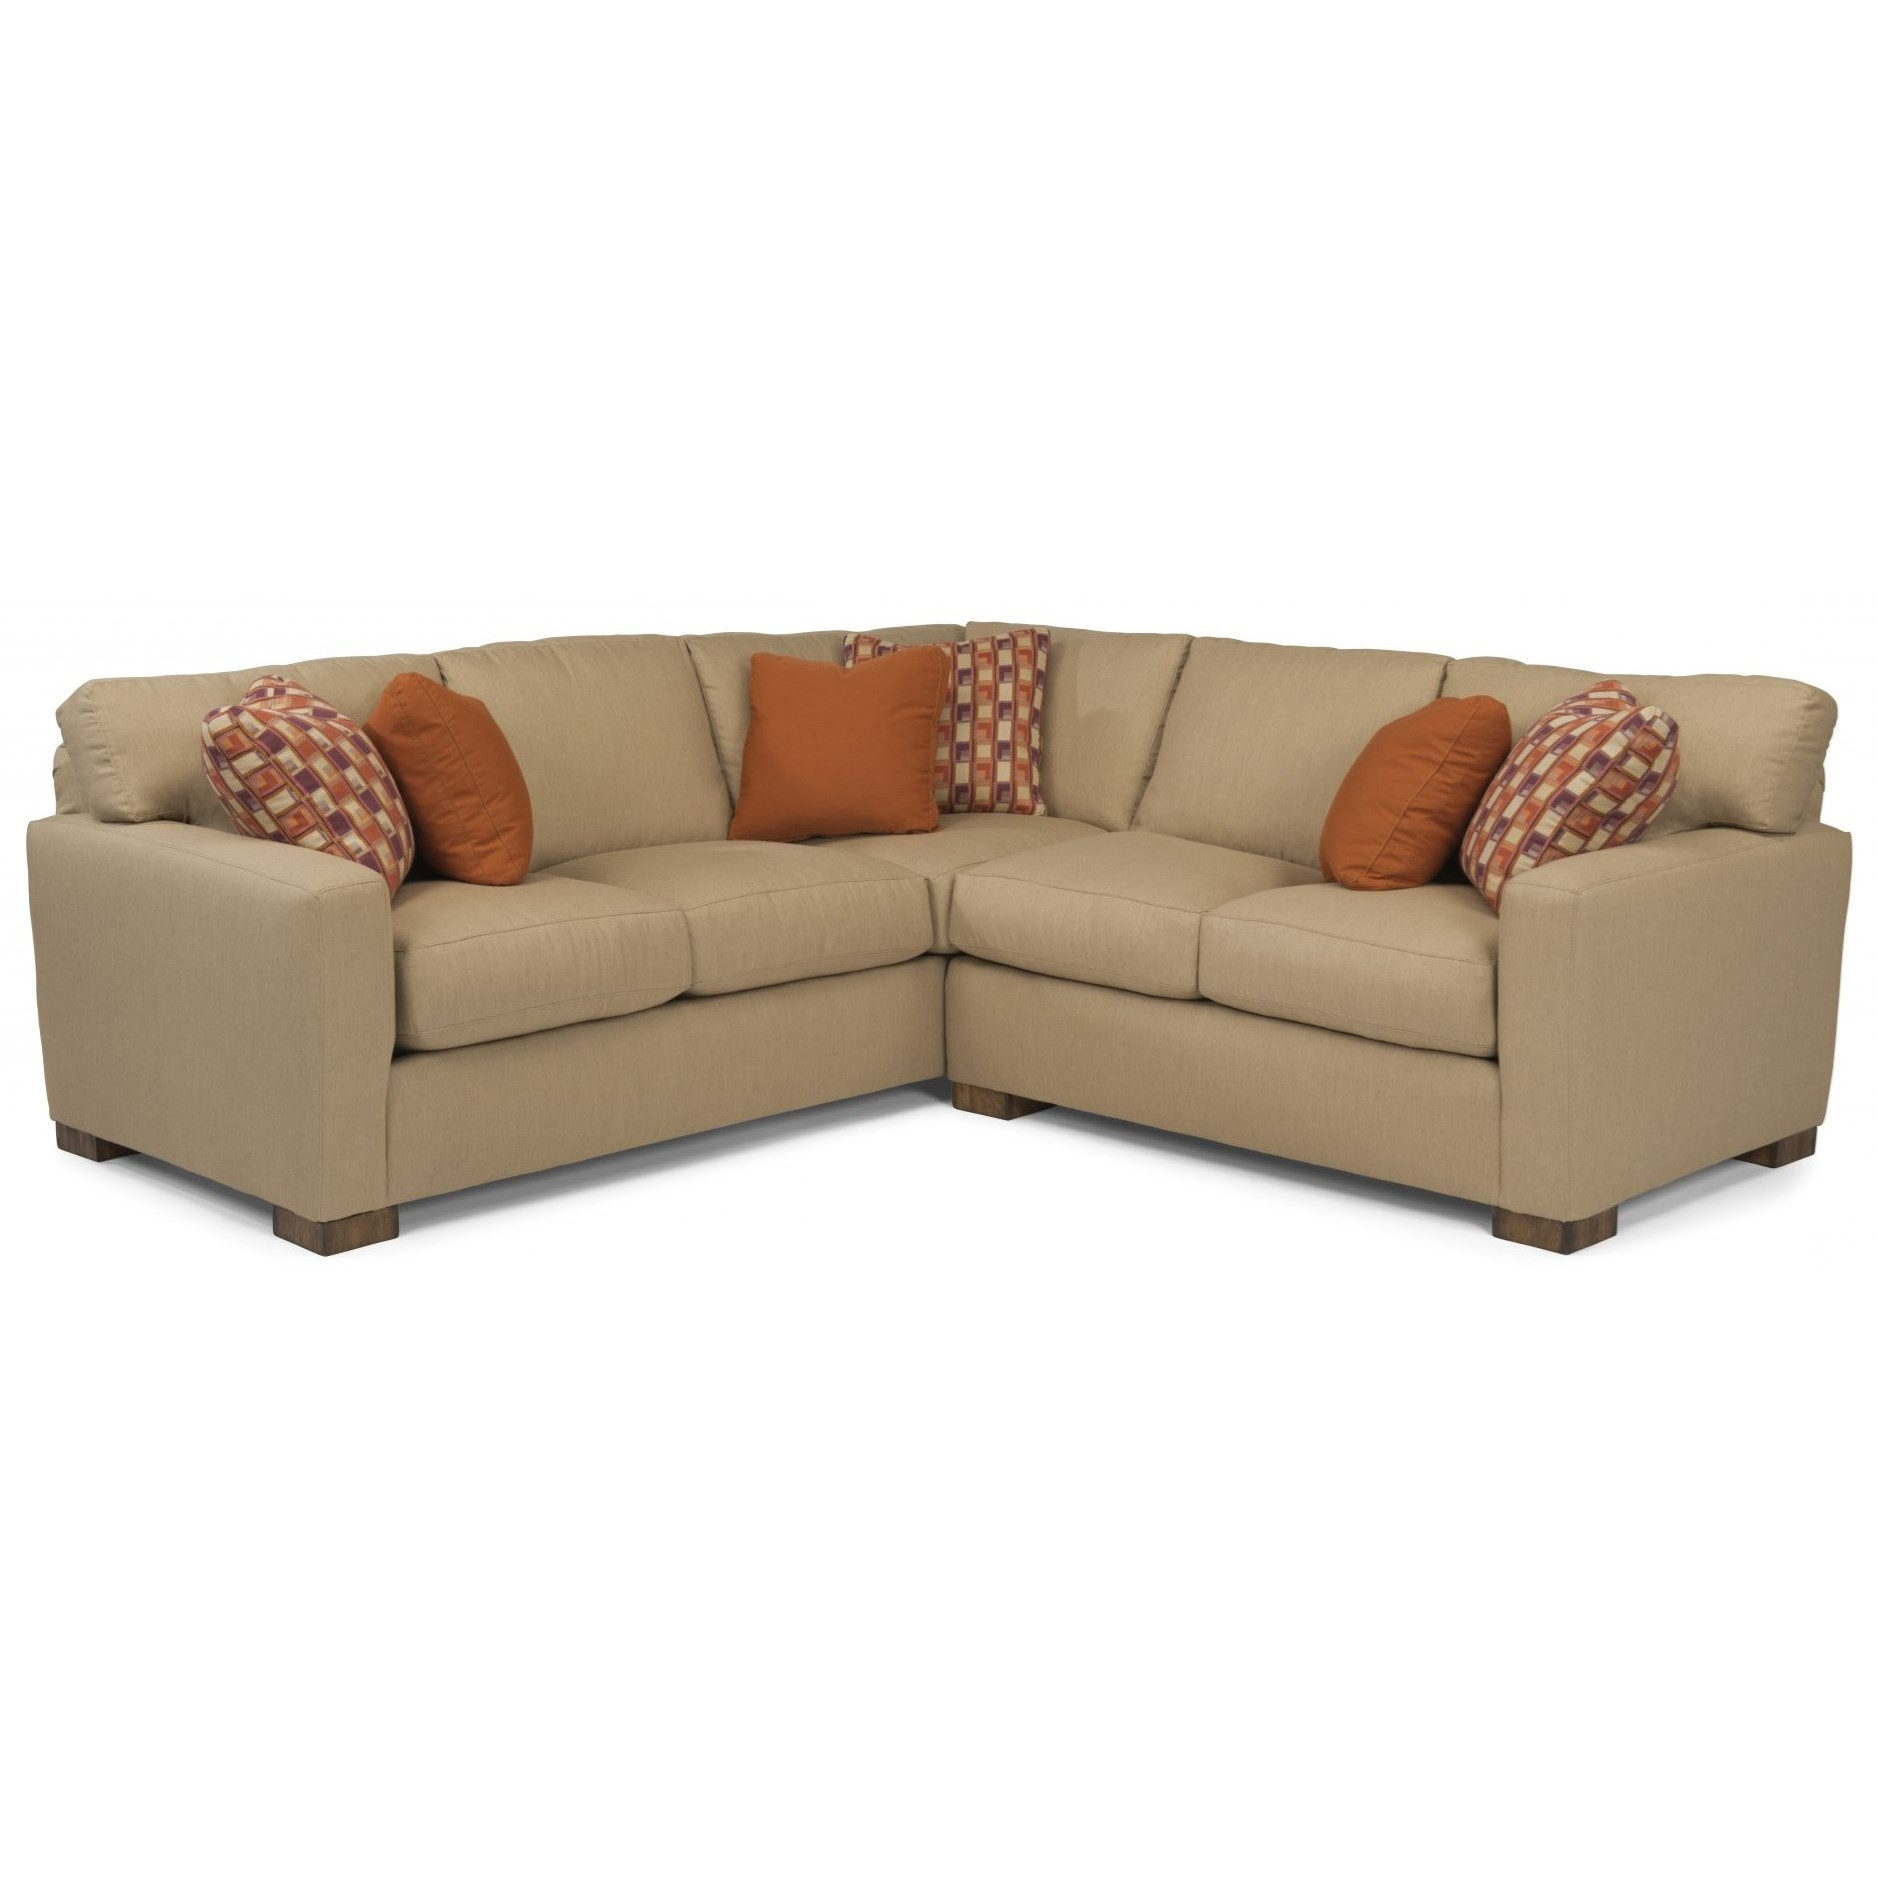 Flexsteel bryant contemporary 4 seat sectional sofa for Sofa 1 80 breit